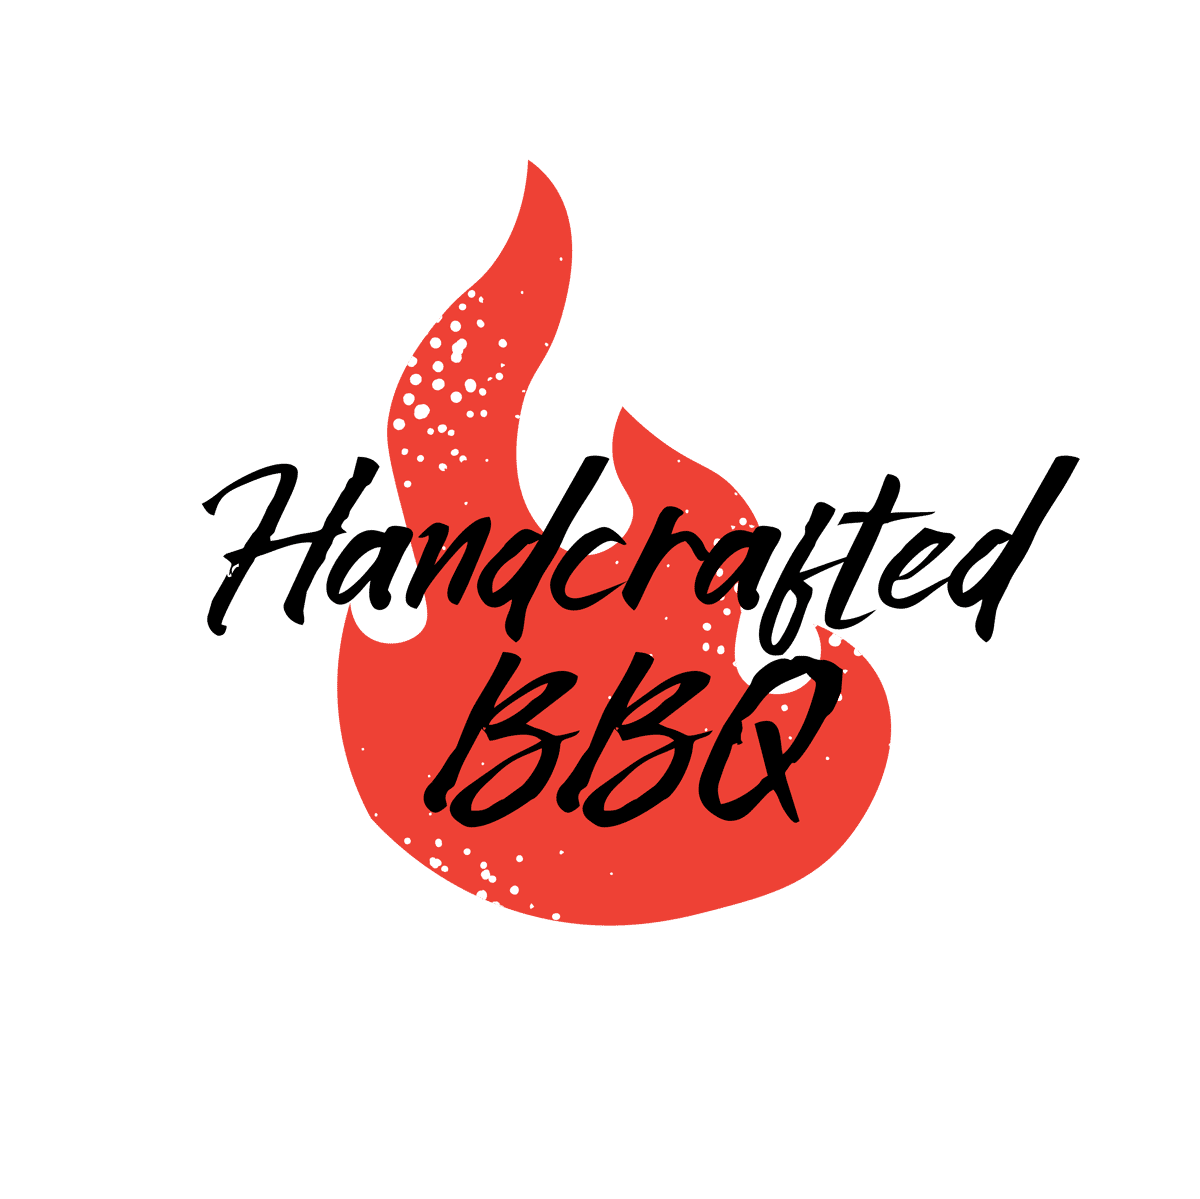 Handcrafted BBQ